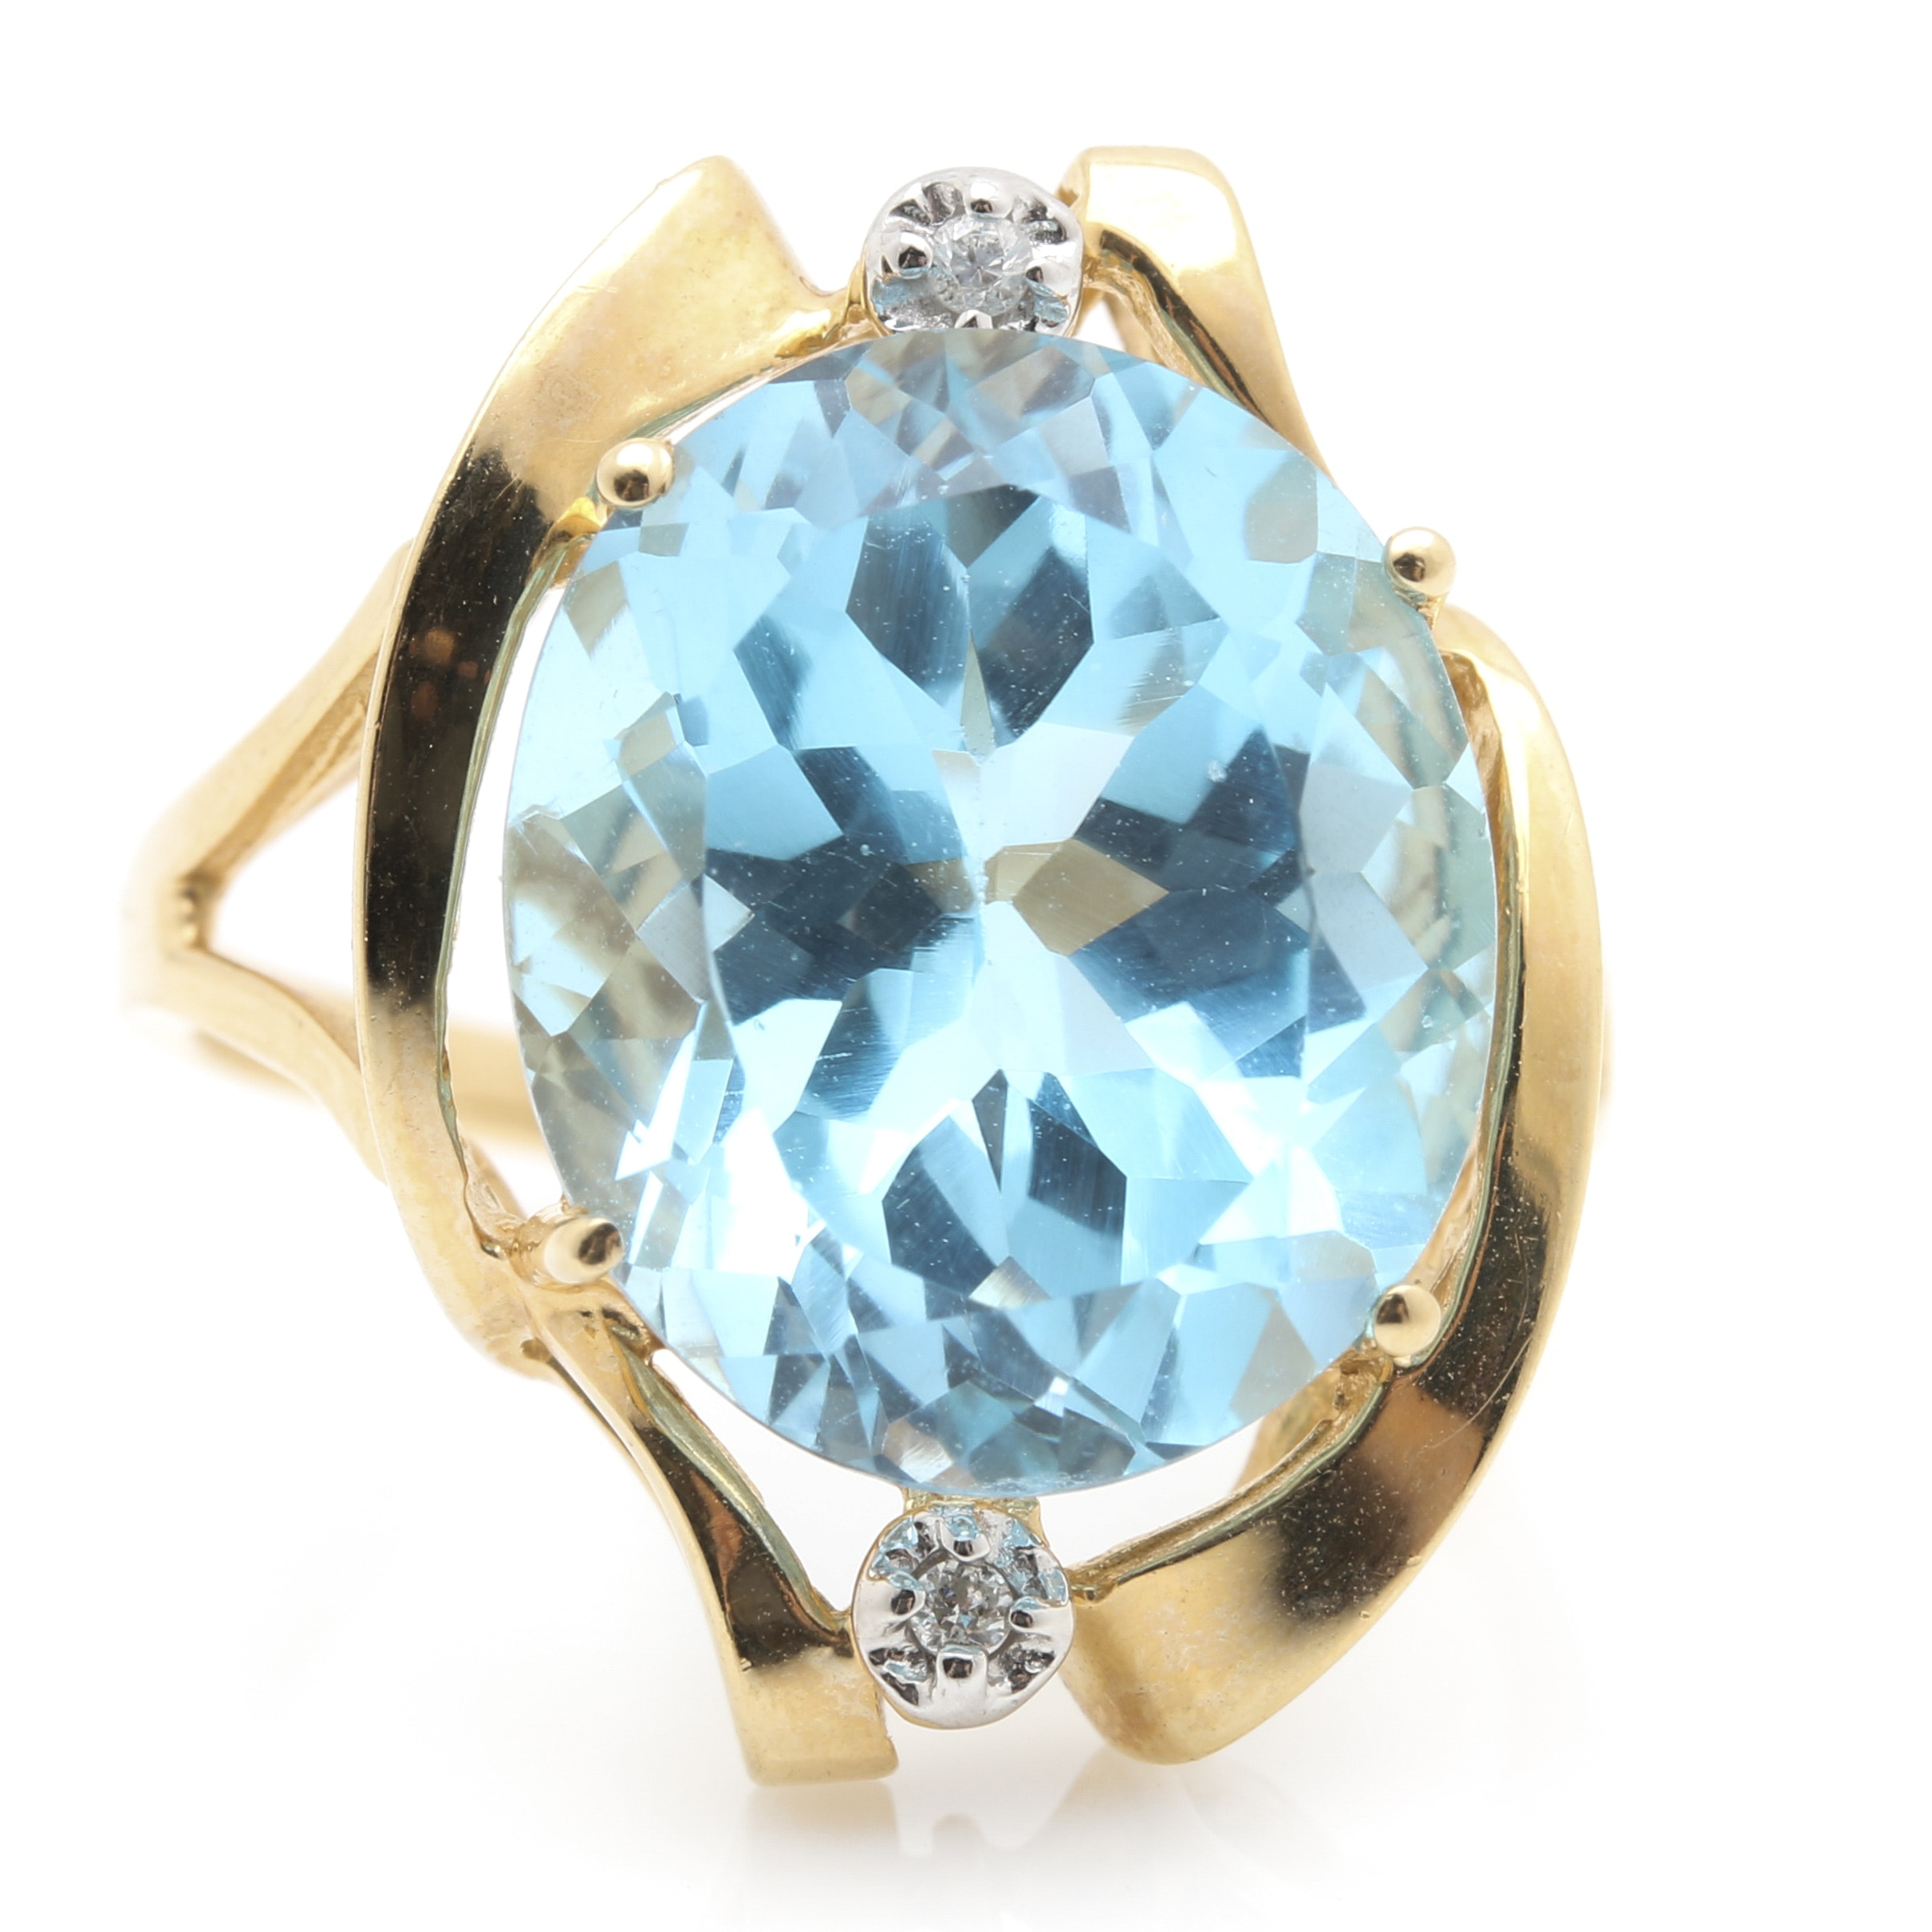 14K Yellow Gold 10.13 CT Blue Topaz and Diamond Ring